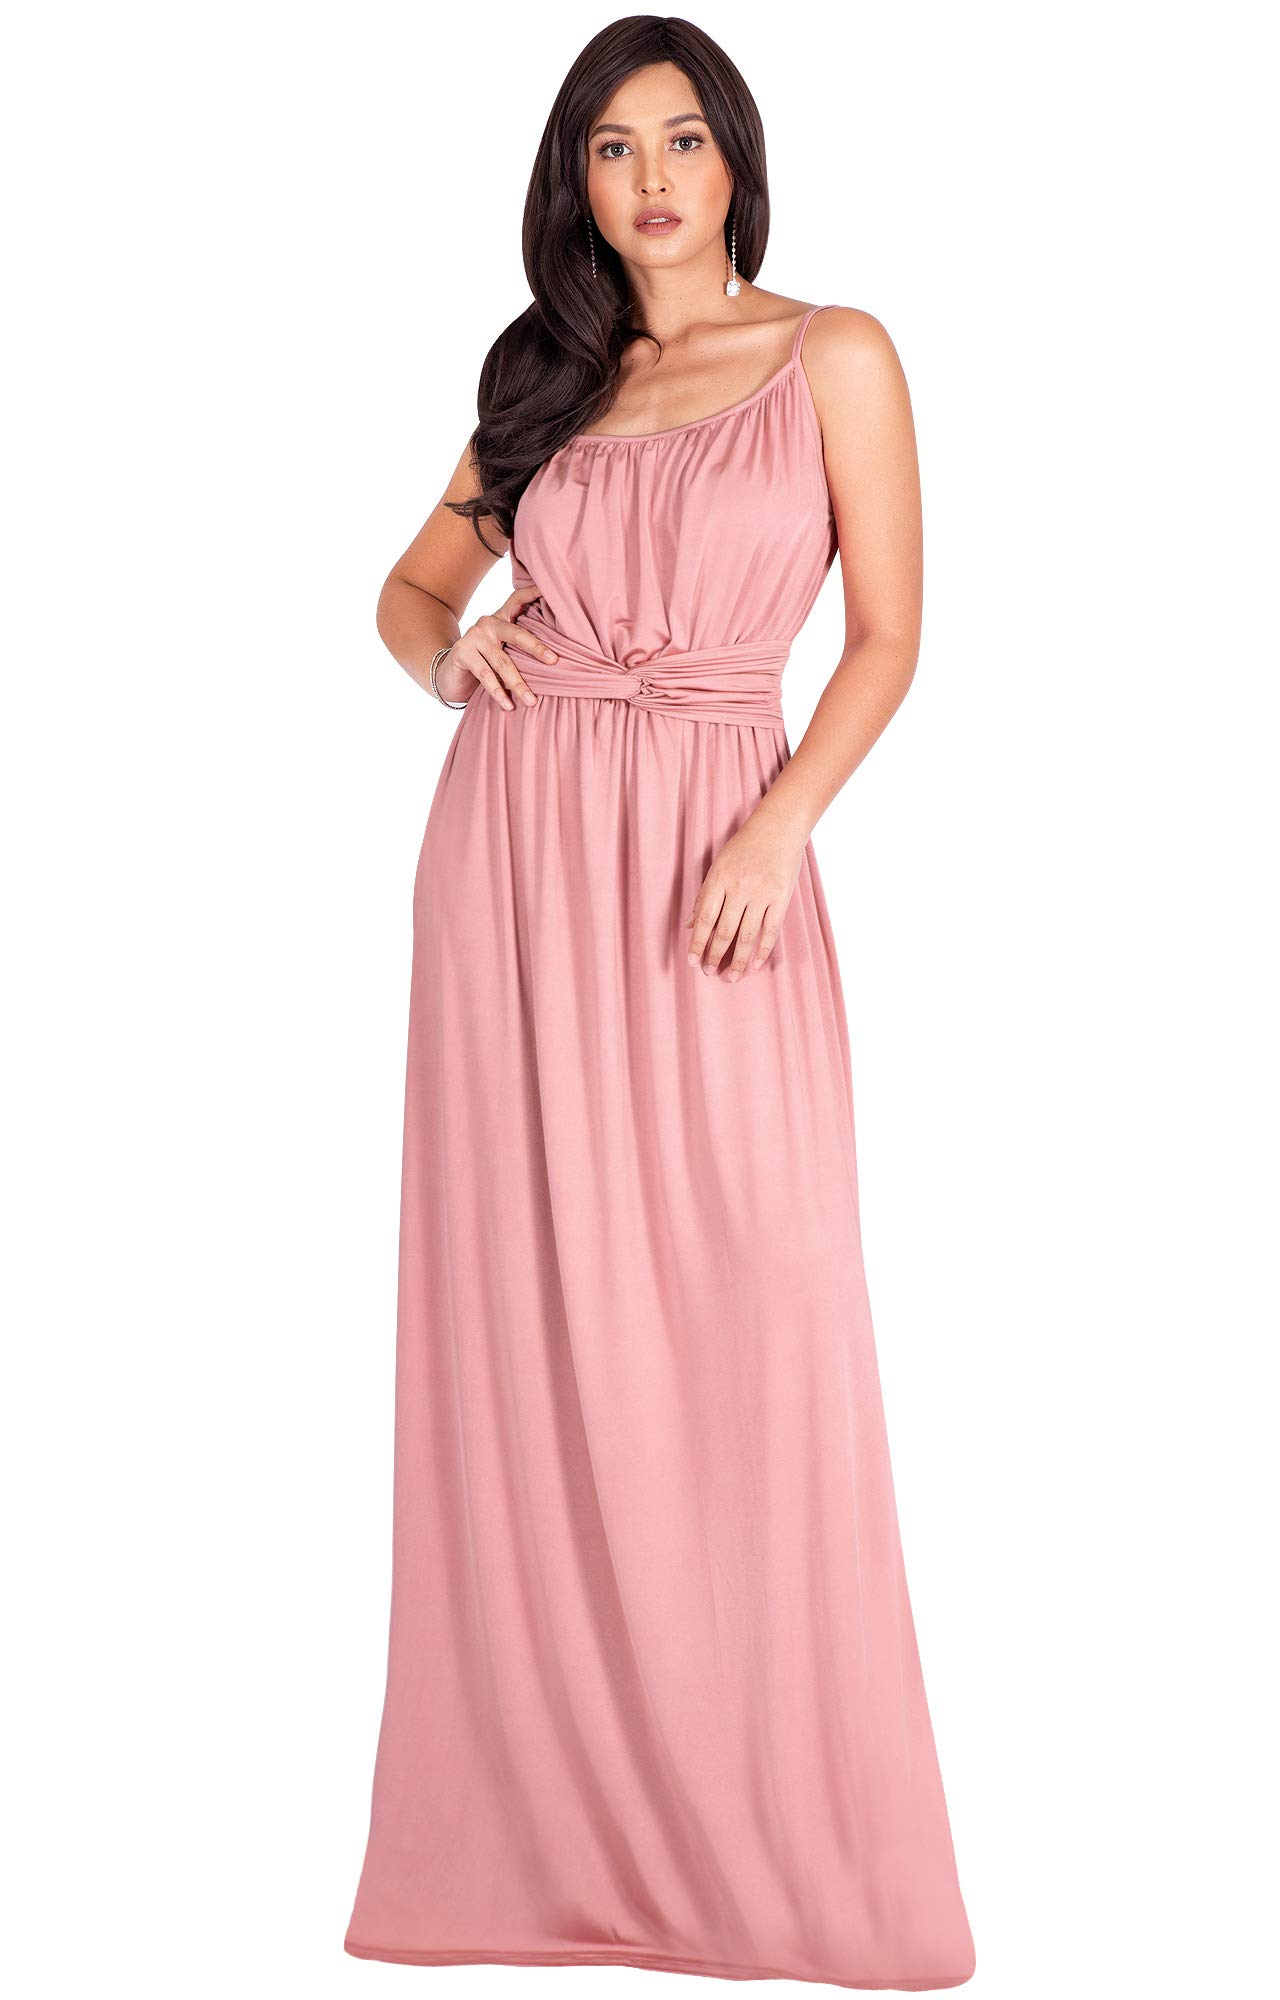 Koh Koh Plus Size Womens Long Sexy Spaghetti Strap Sleeveless V Neck Summer Beach Formal Bridesmaid Wedding Guest Party Floor Length Flowy Gown Gowns